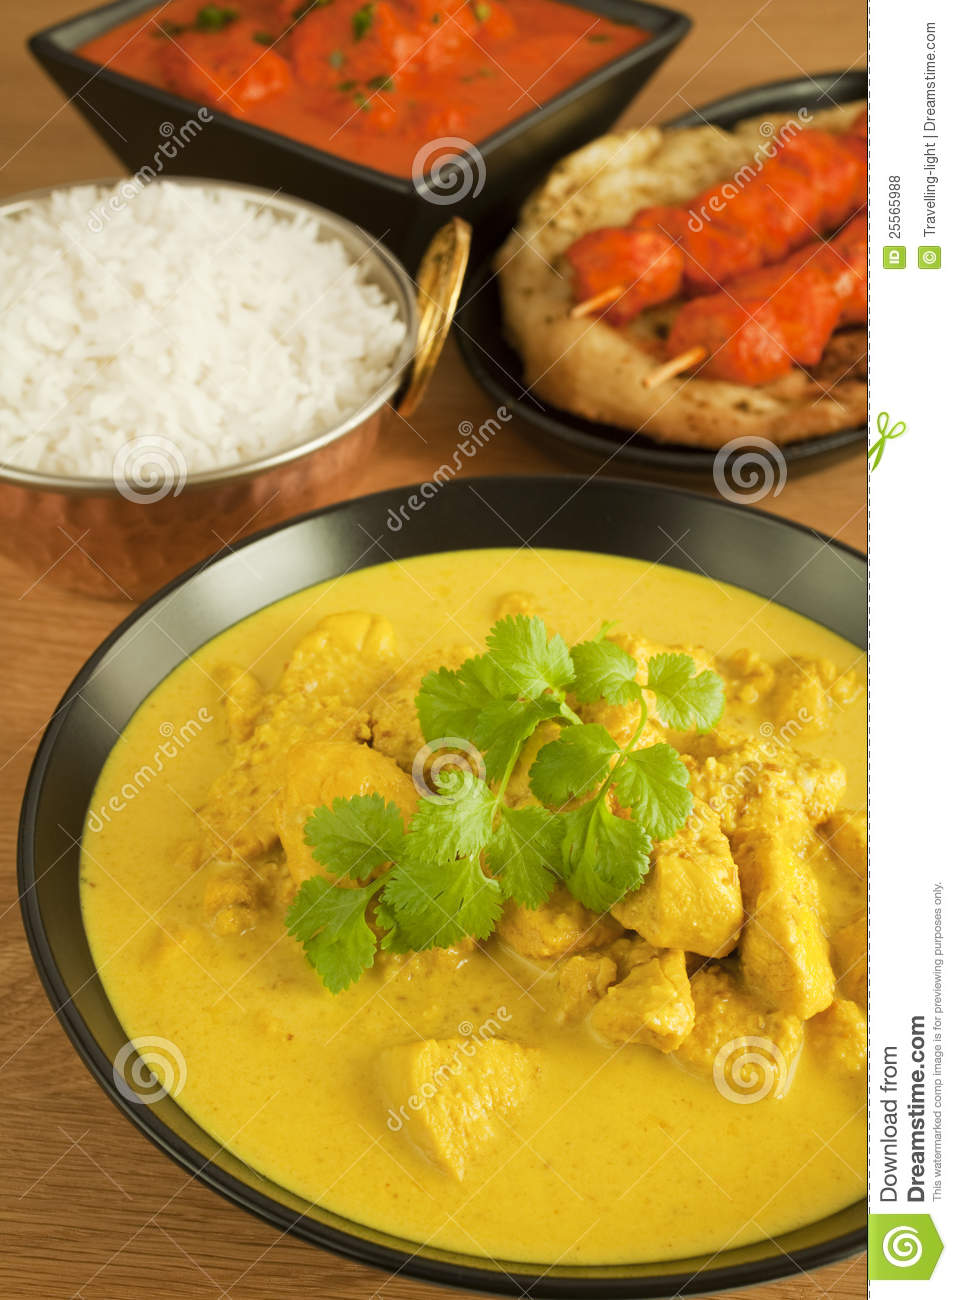 indian cuisine food meal curry chicken tikka stock photo image 25565988. Black Bedroom Furniture Sets. Home Design Ideas